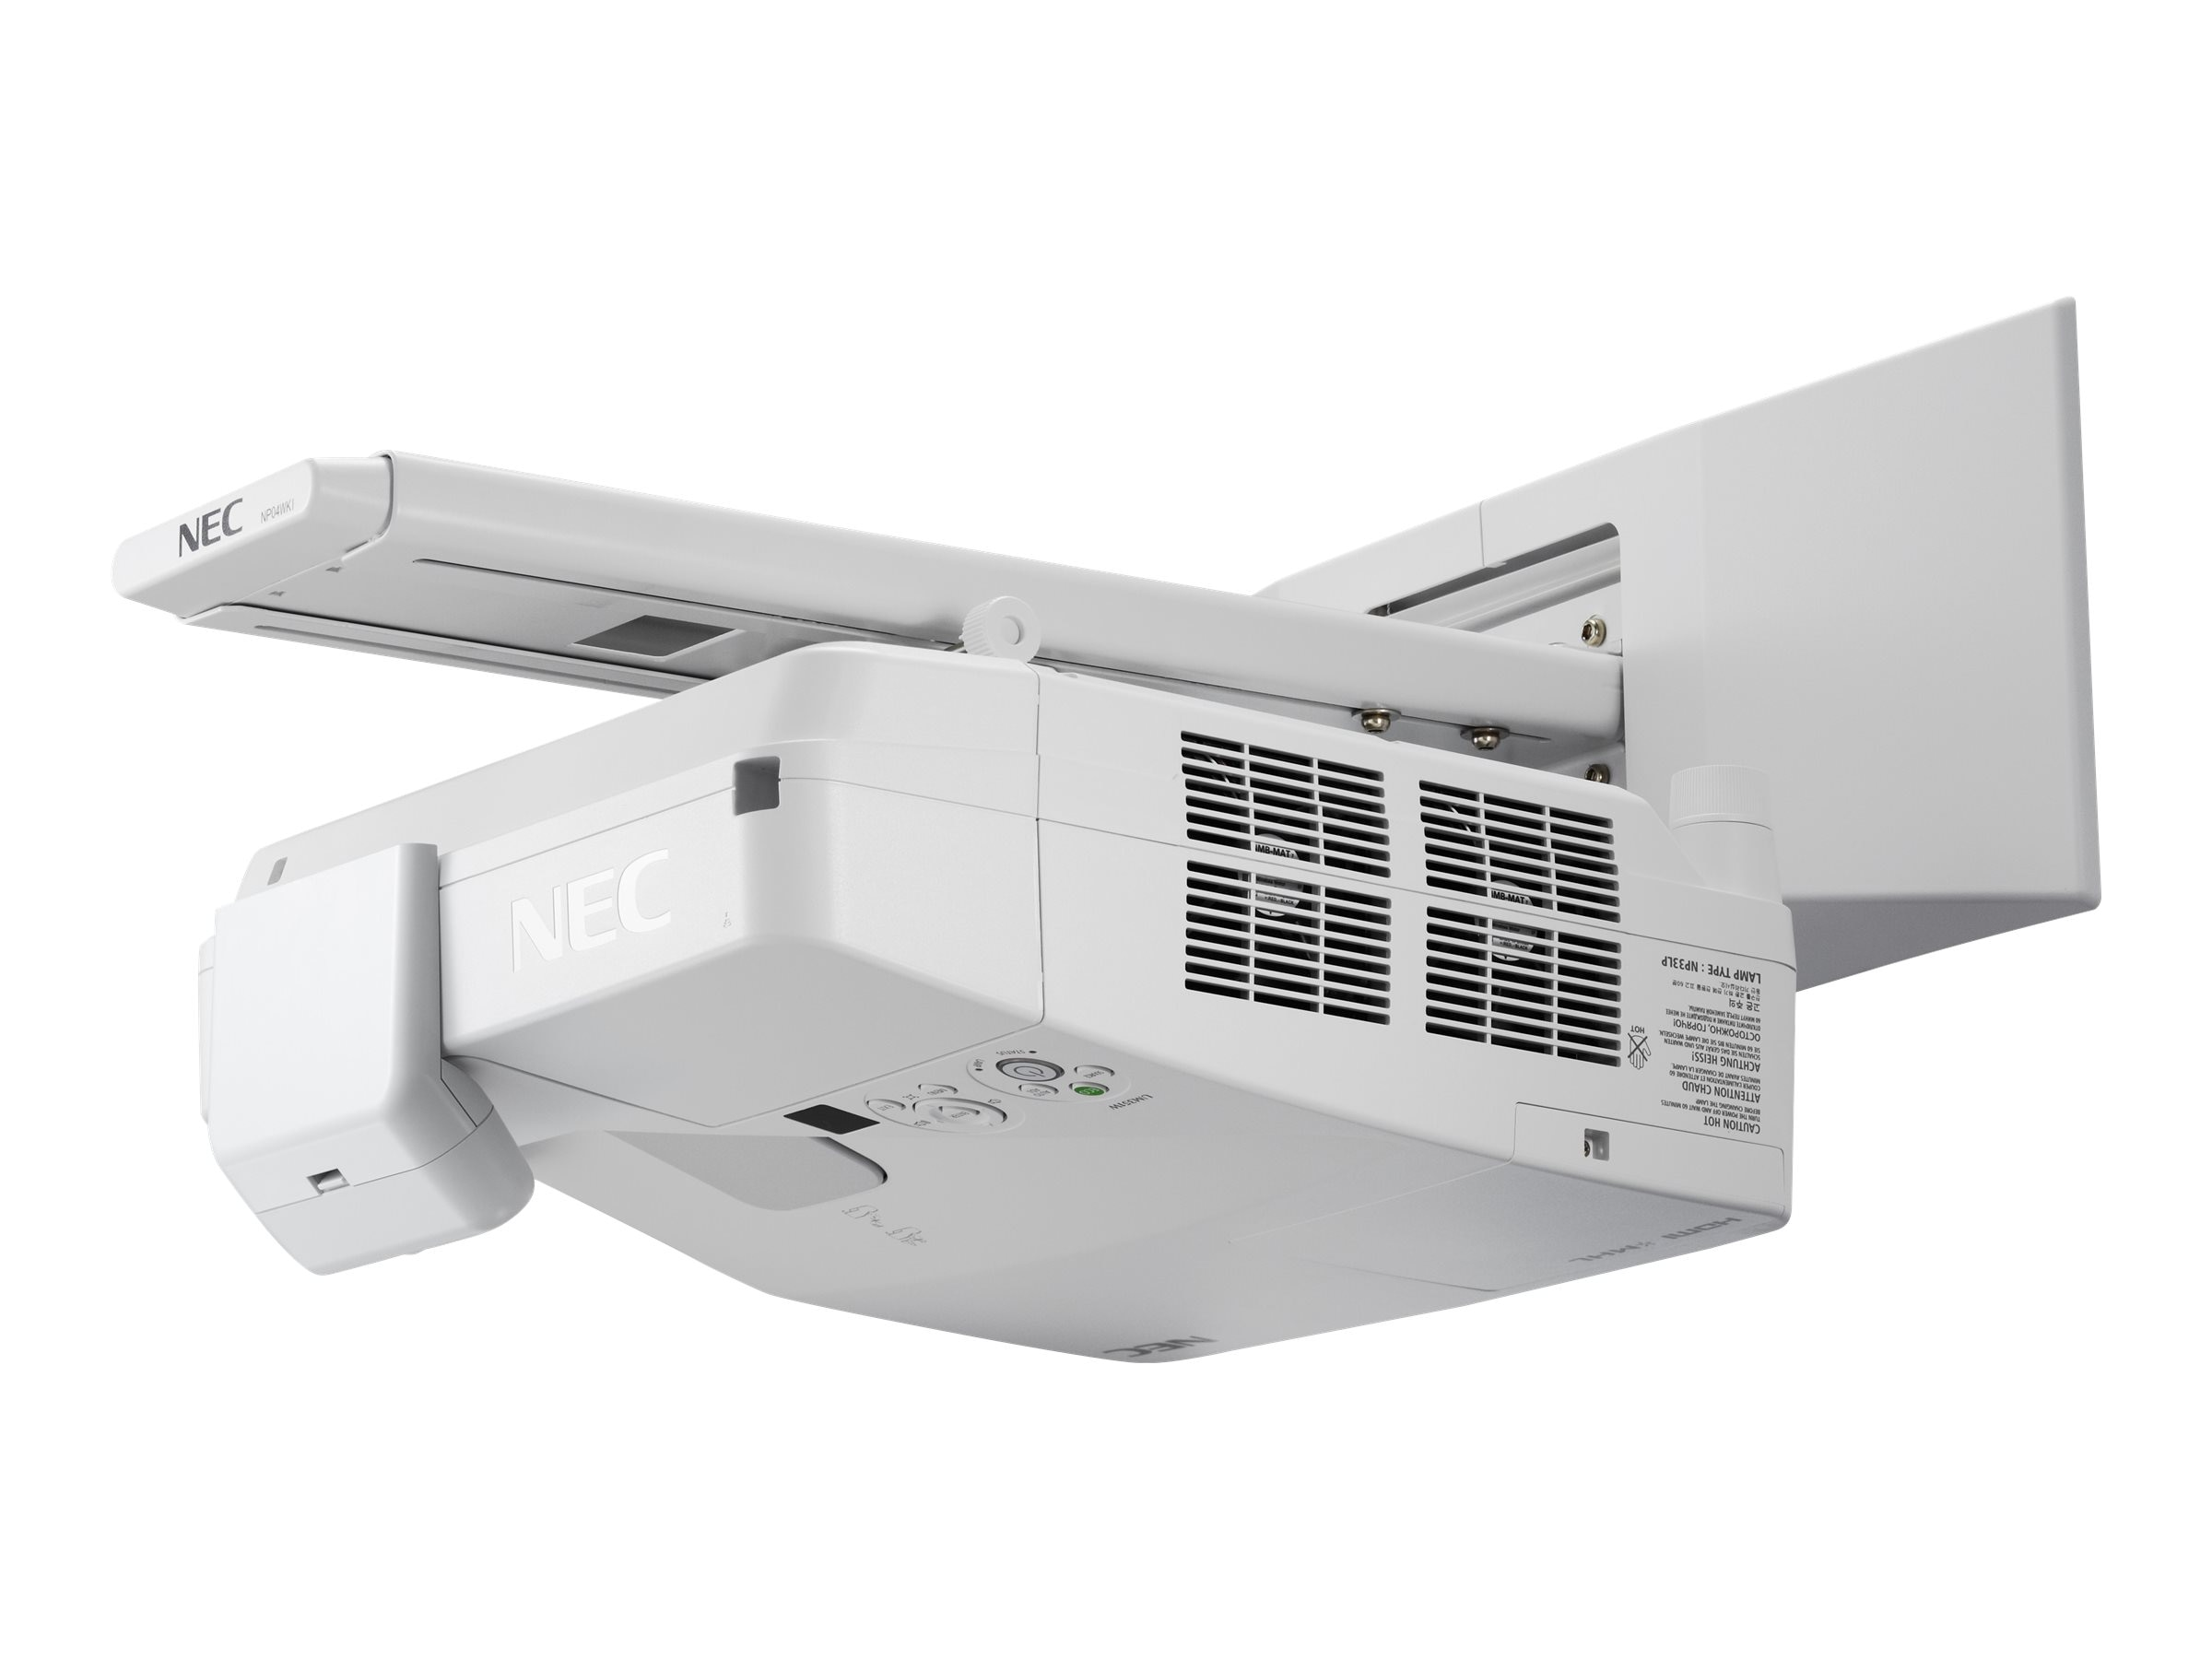 NEC UM361X Ultra Short Throw LCD Projector, 3600 Lumens, White with Wall Mount, Interactive Module, Pens, NP-UM361XI-WK